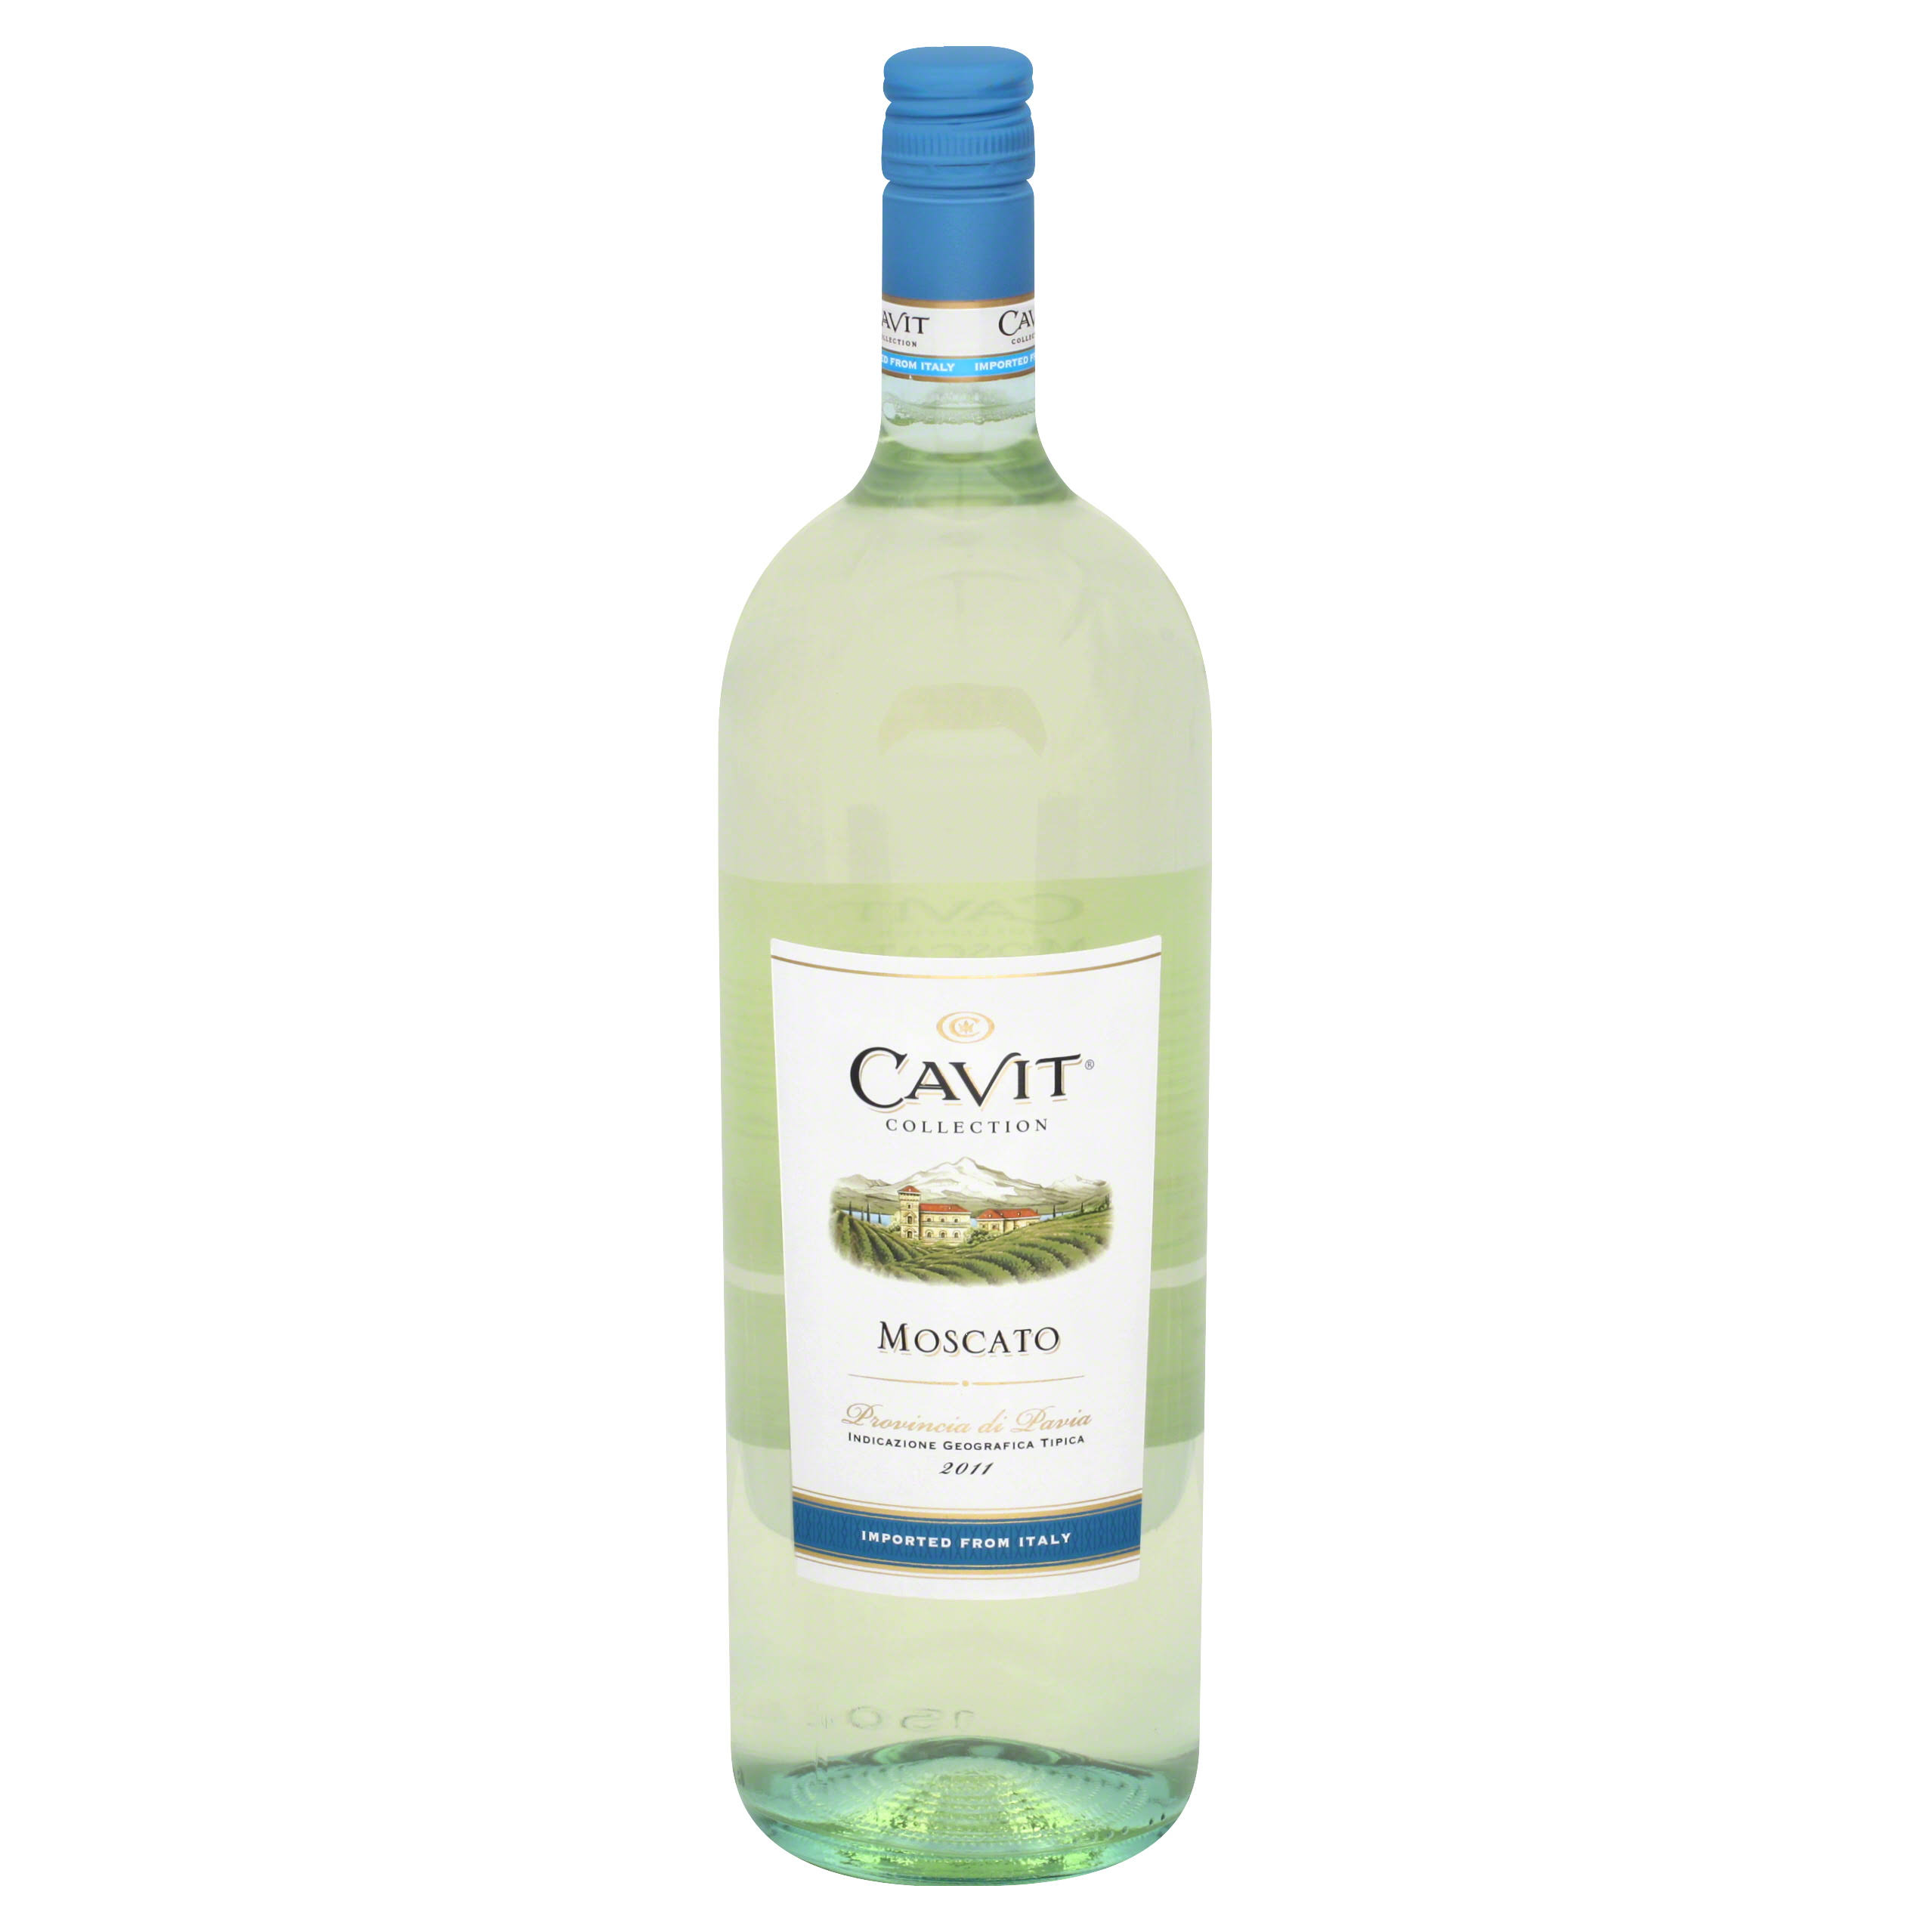 Cavit Collection Moscato